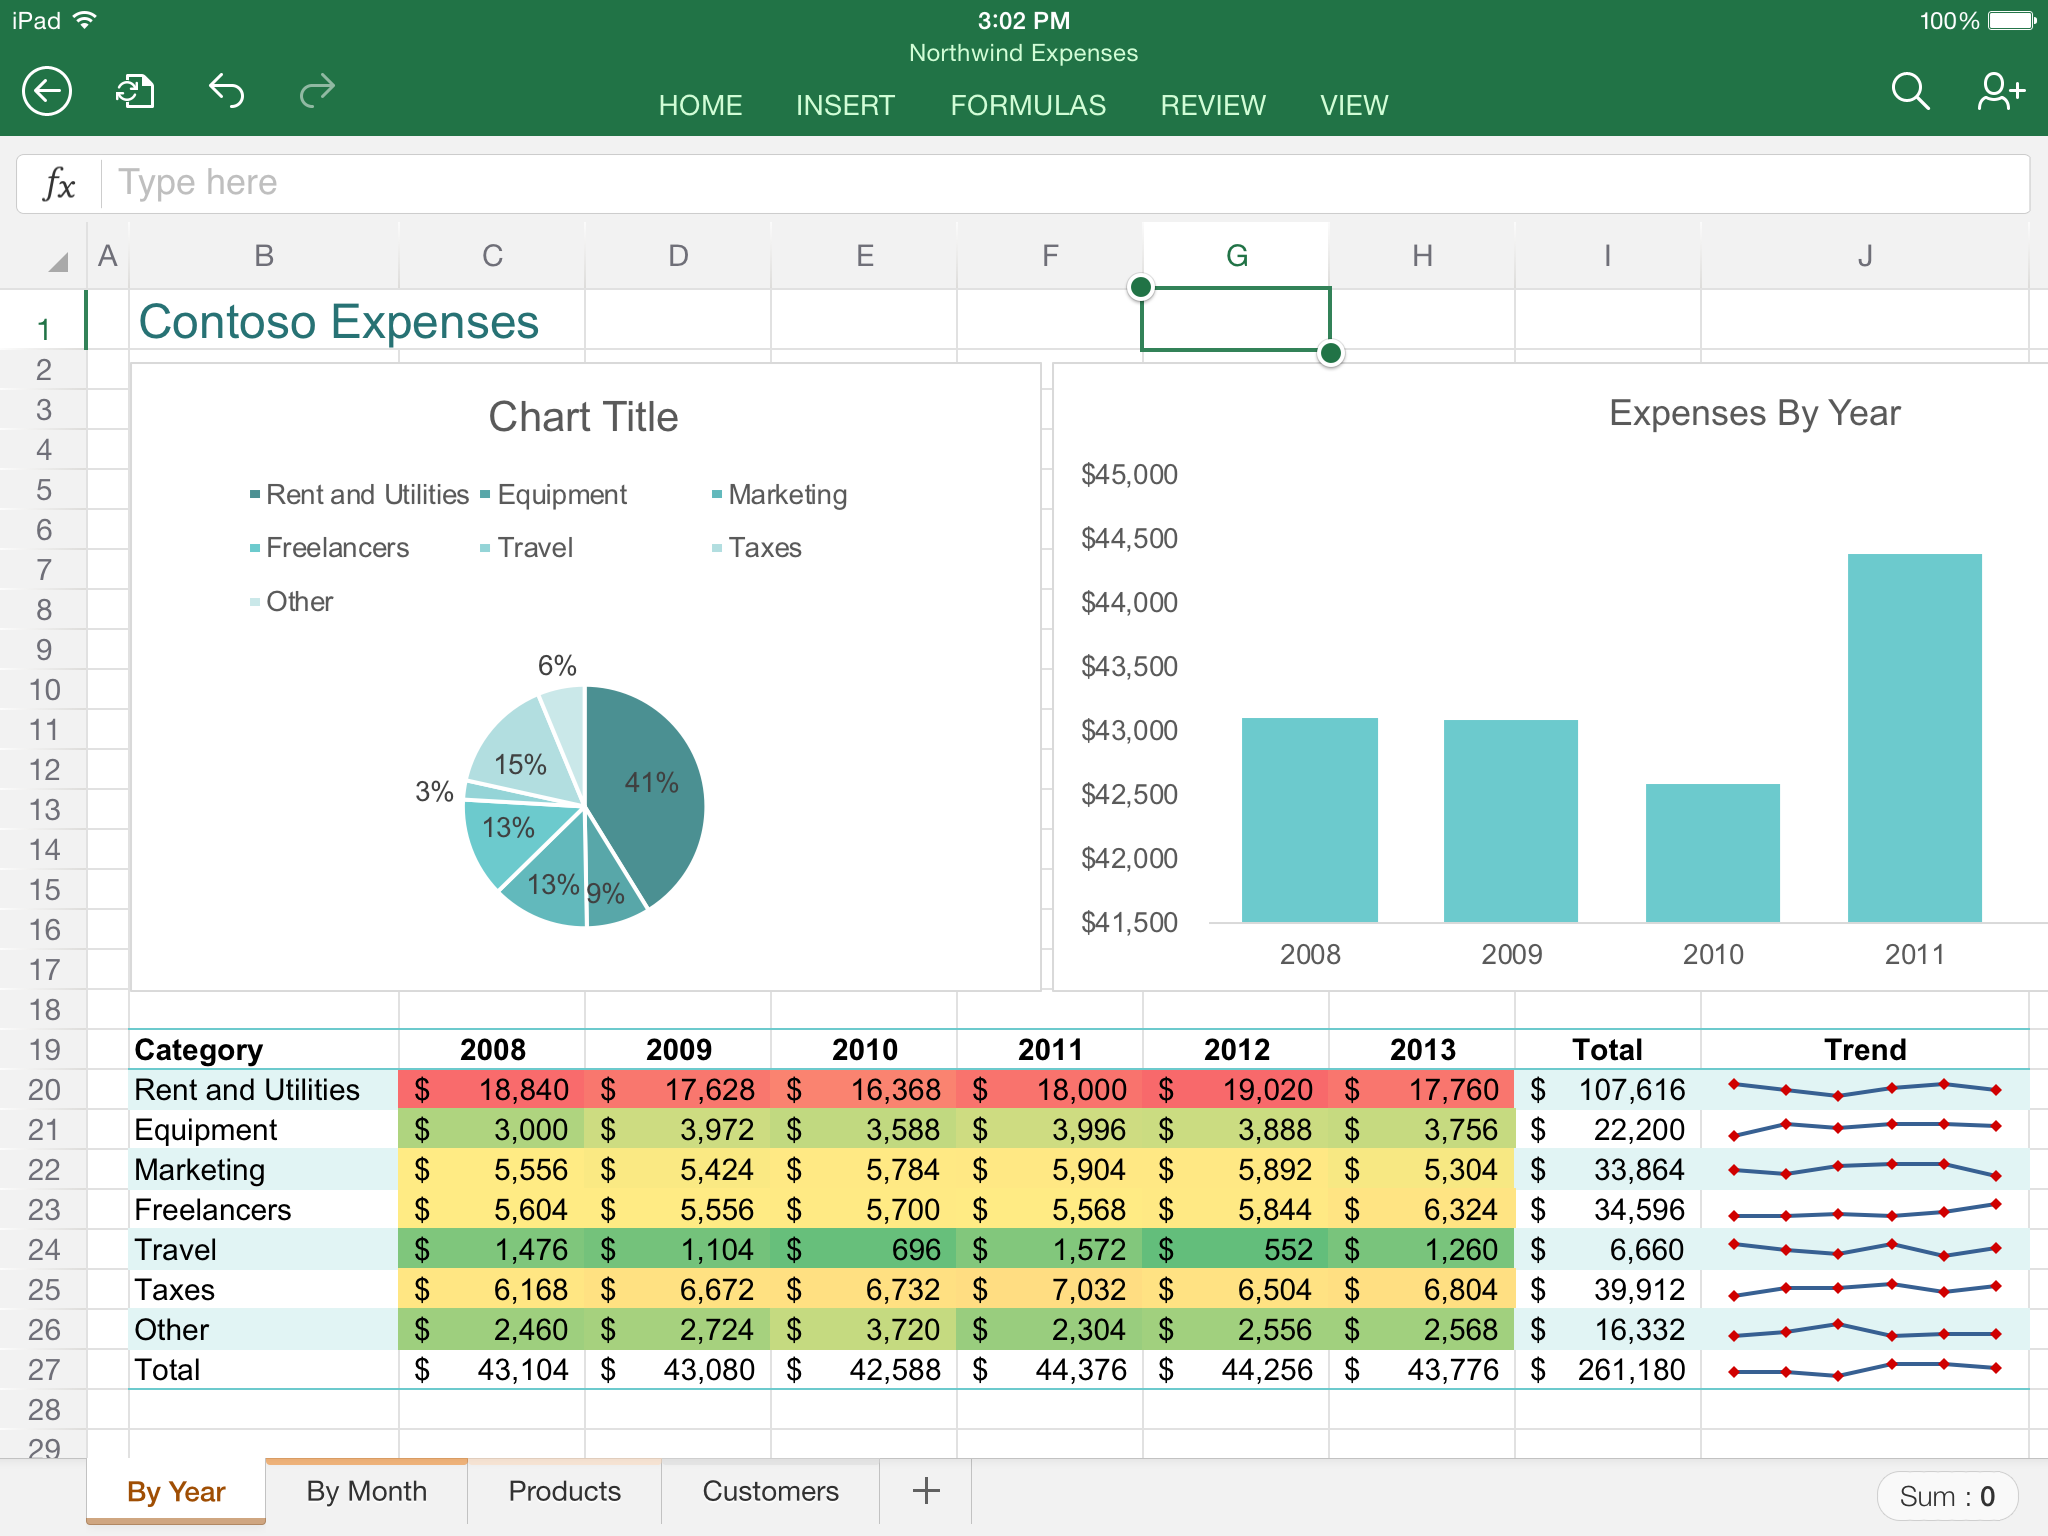 Ediblewildsus  Splendid App Highlight Excel  Mobile Digital Now With Fascinating Excel In Action With Delightful Excel Saveas Also Define A Range In Excel In Addition Linear Trend Line Excel And Deselect Excel As Well As Can You Convert Excel To Word Additionally Copy Excel To Word From Youstonybrookedu With Ediblewildsus  Fascinating App Highlight Excel  Mobile Digital Now With Delightful Excel In Action And Splendid Excel Saveas Also Define A Range In Excel In Addition Linear Trend Line Excel From Youstonybrookedu